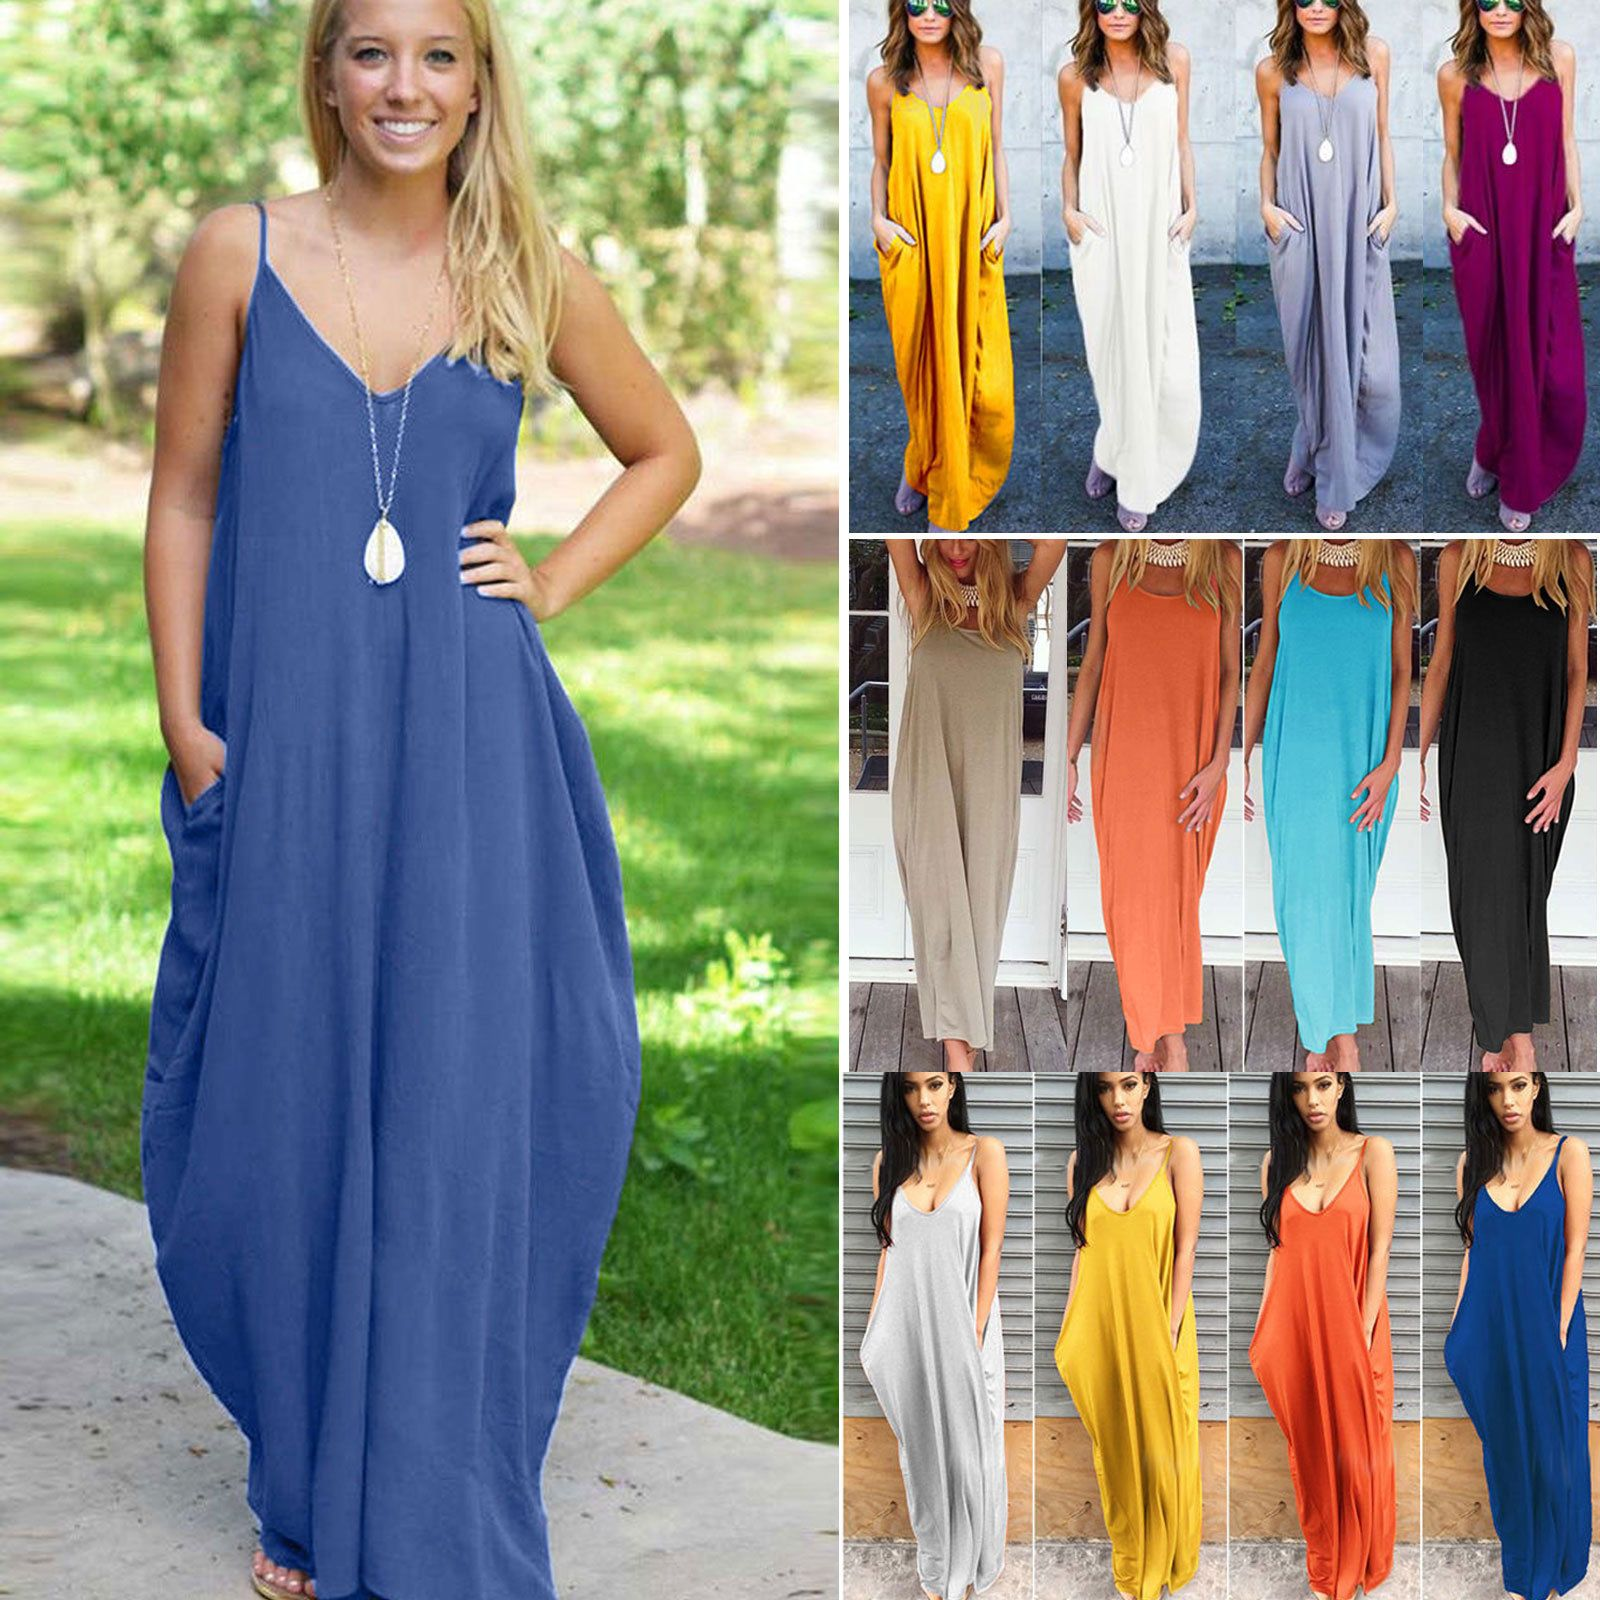 Womens Boho Long Maxi Dress Summer Sundress Beach Dress Plus Size Casual Summer